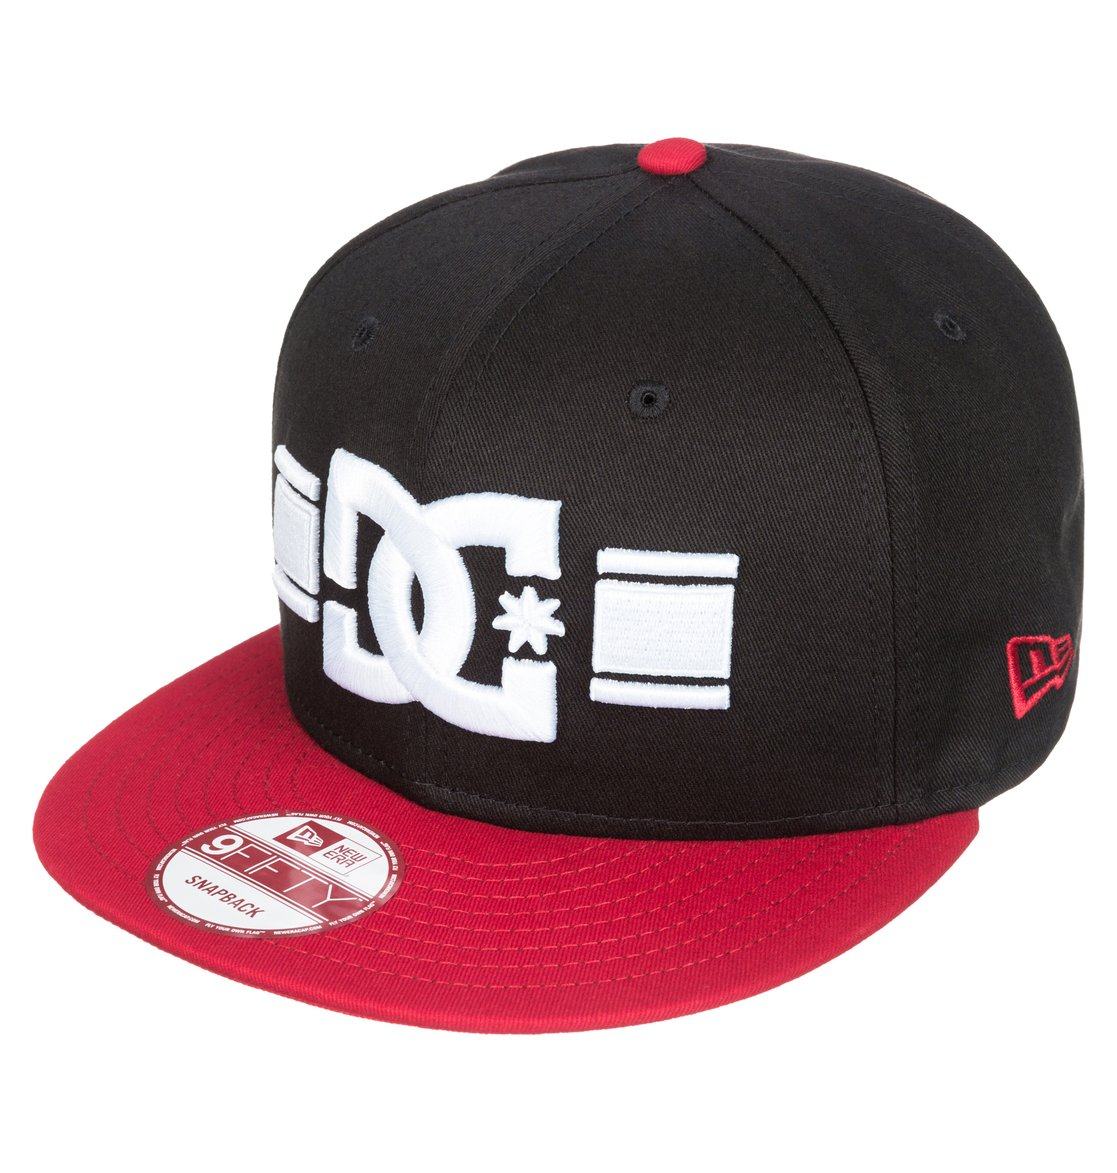 Rob Dyrdek Icon Snapback от DC Shoes